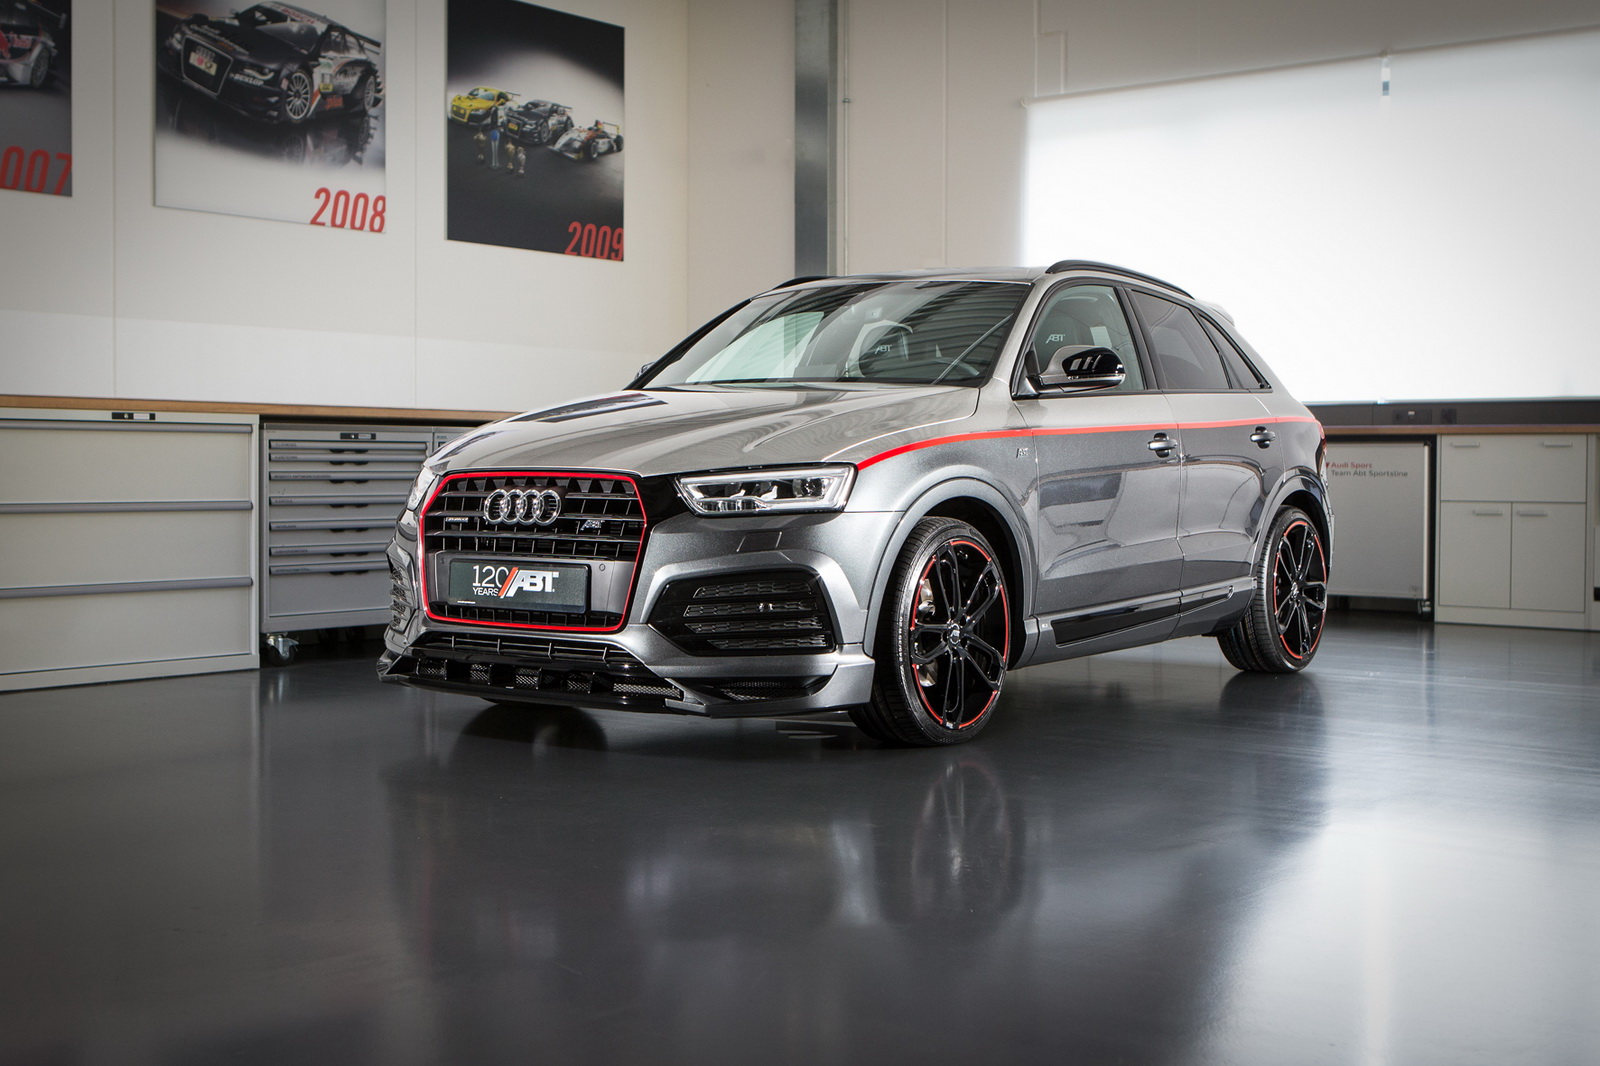 abt introduces special models  celebrate